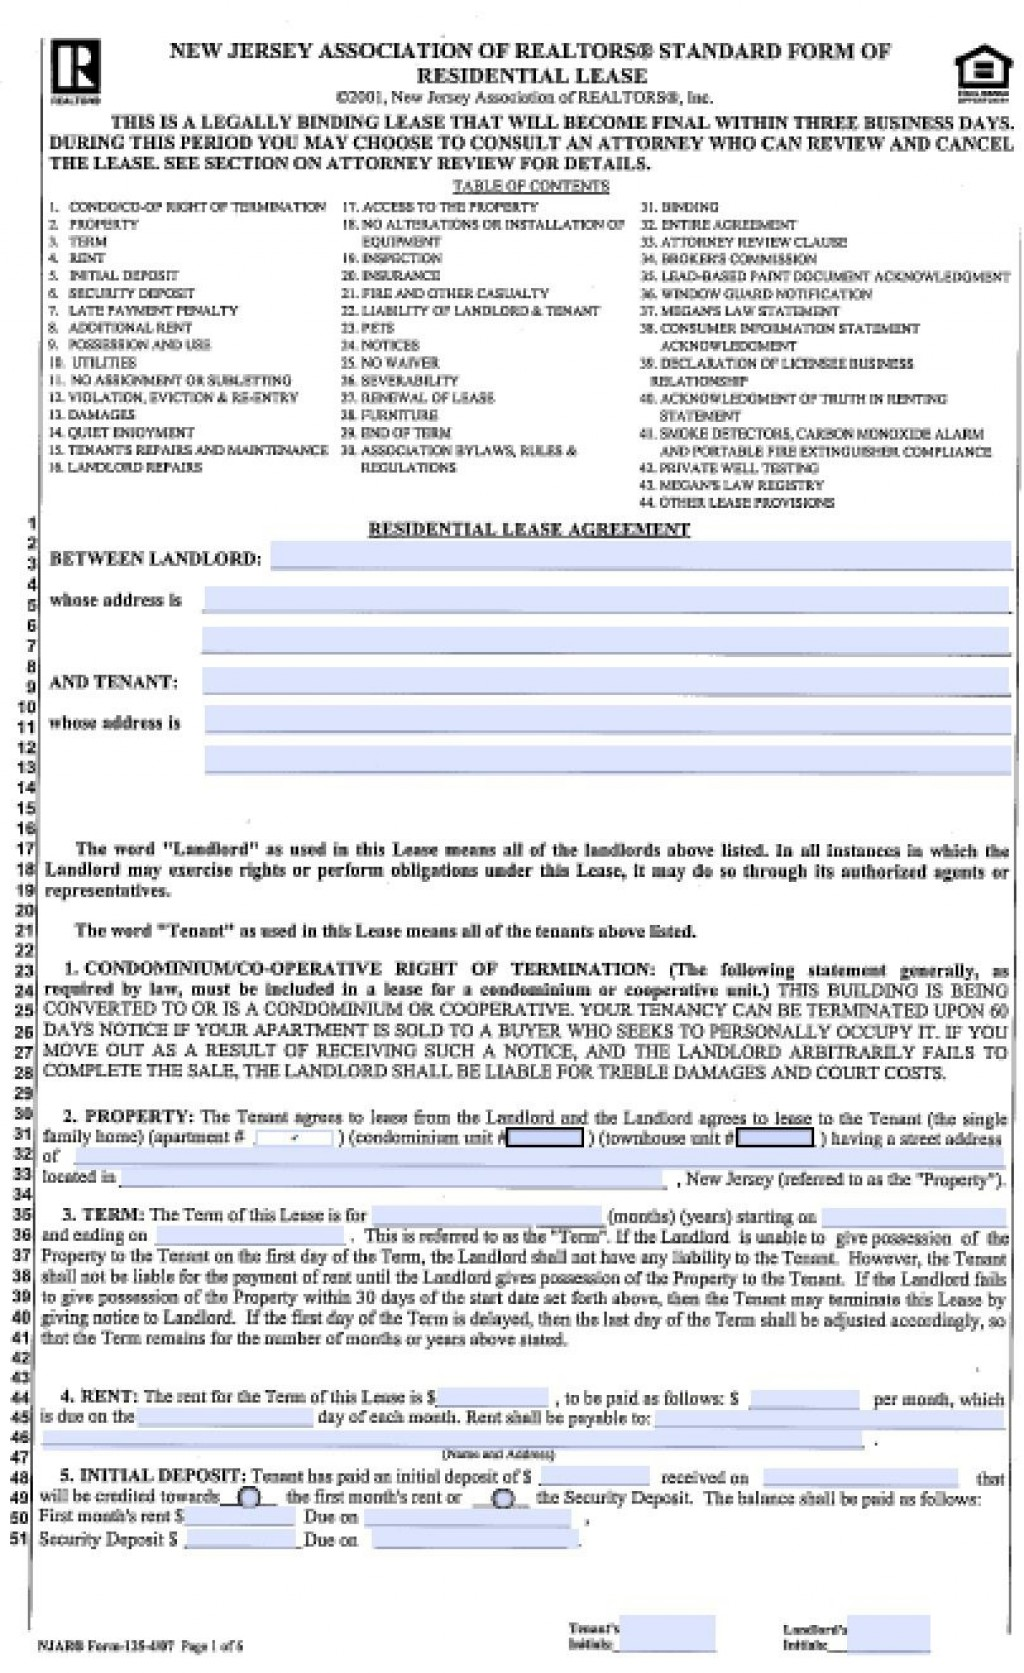 004 Archaicawful Generic Rental Lease Agreement Nj Design  SampleLarge